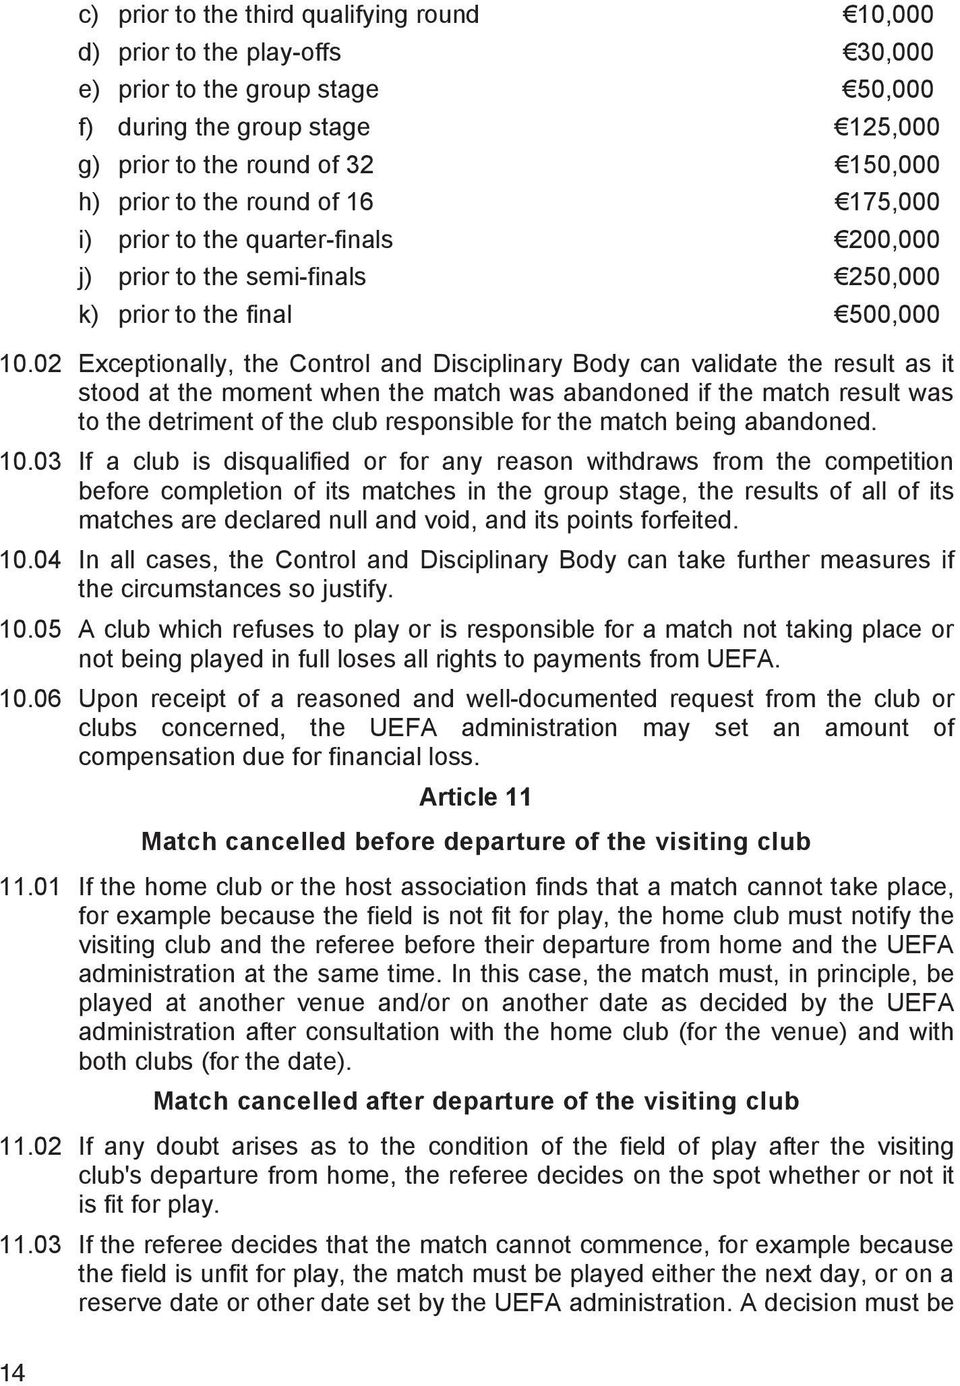 02 Exceptionally, the Control and Disciplinary Body can validate the result as it stood at the moment when the match was abandoned if the match result was to the detriment of the club responsible for